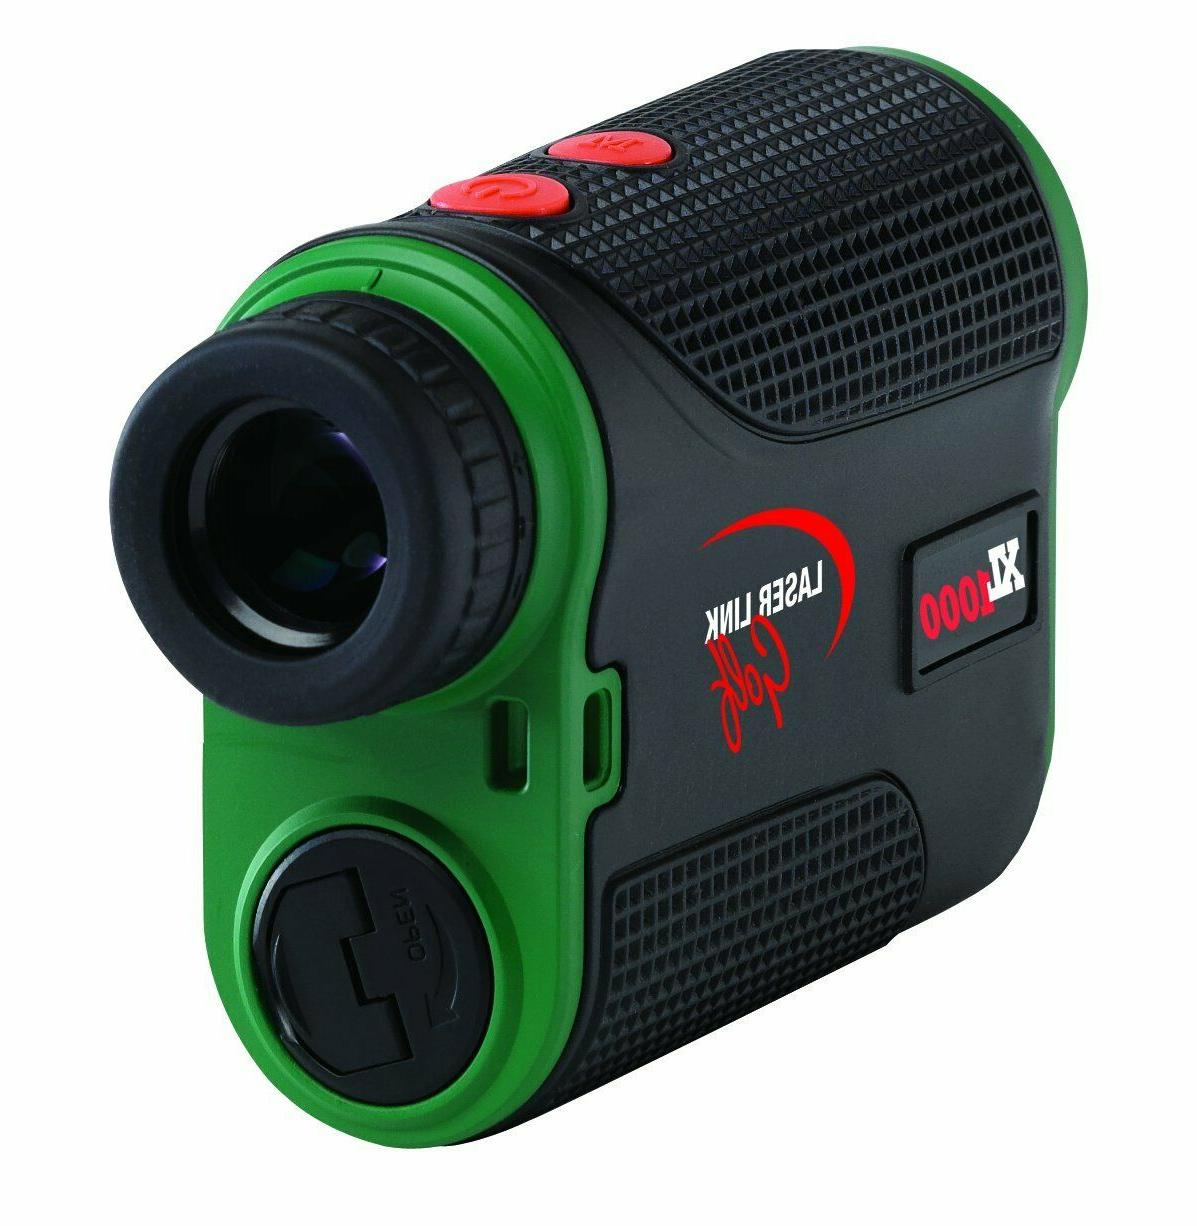 golf xl1000 laser golf rangefinder open box